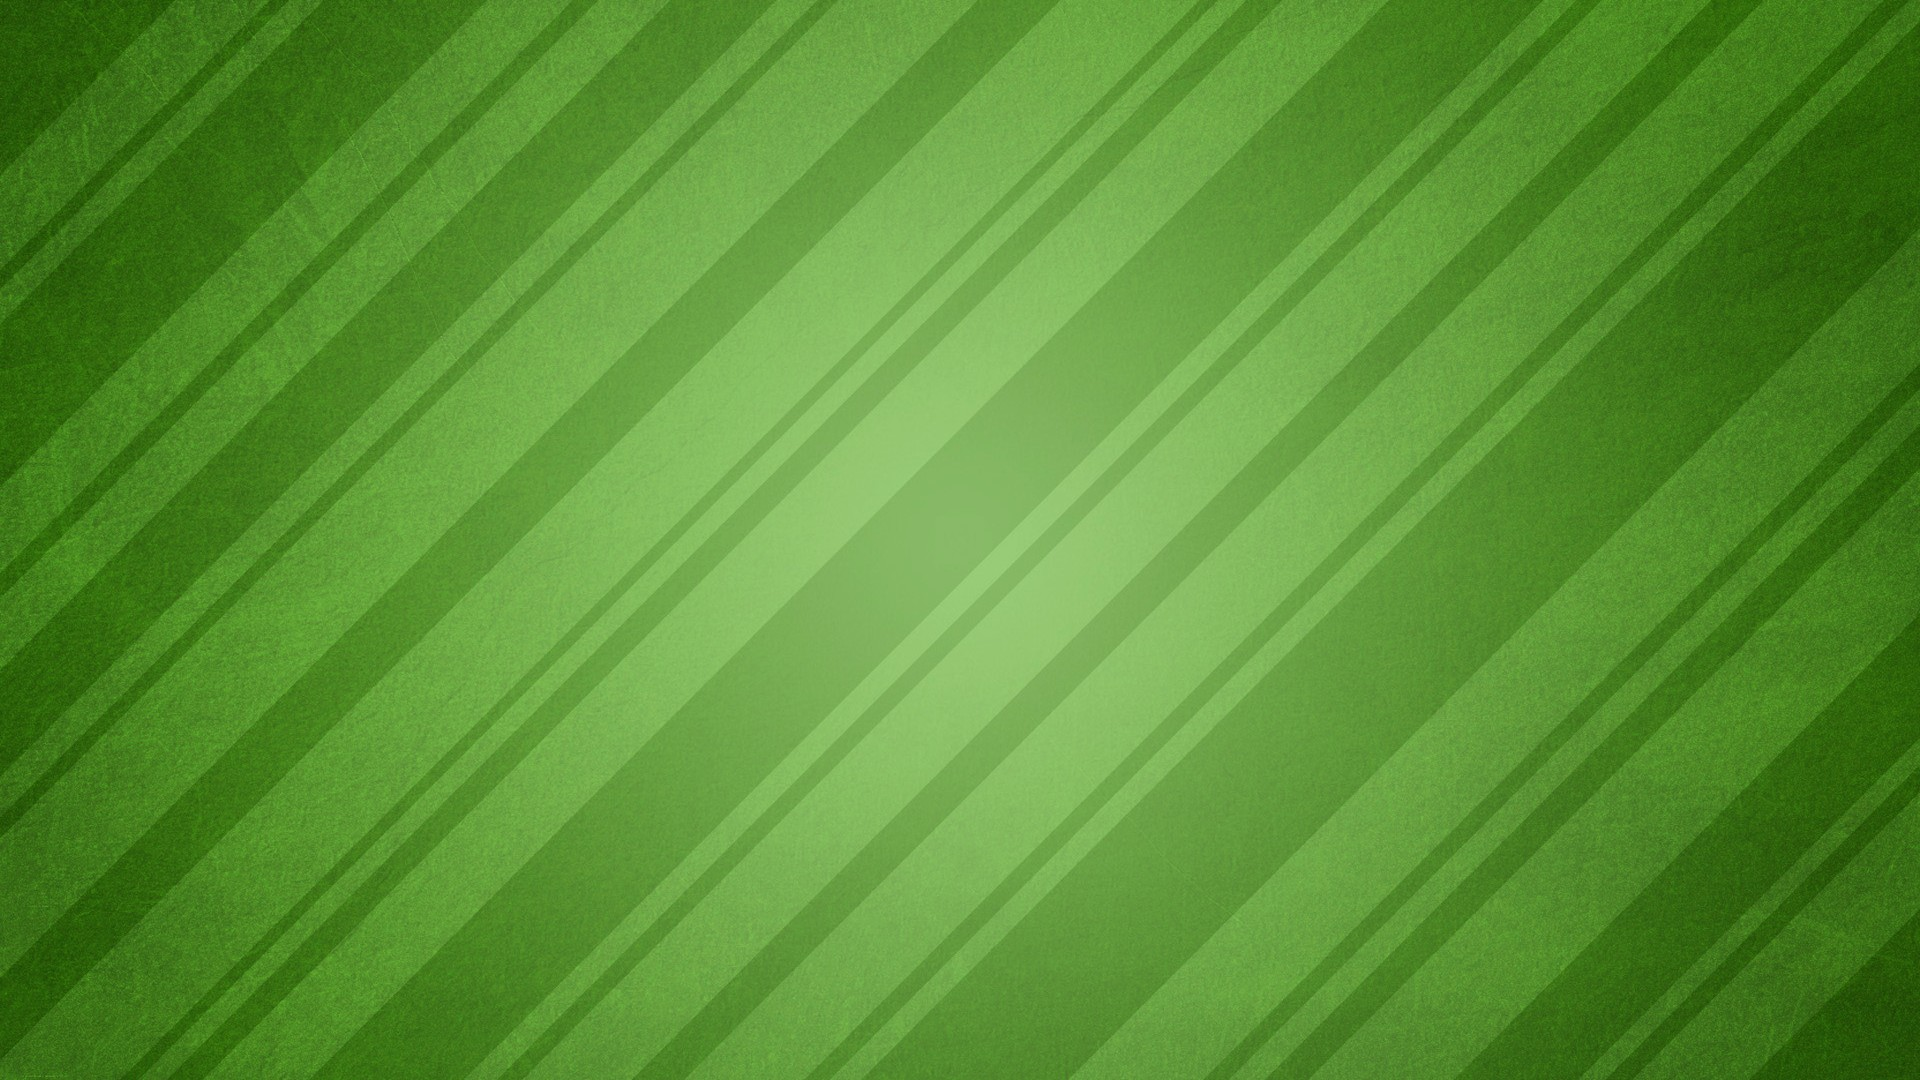 Gear Wallpaper Hd Wrapping Paper Green Hd Wallpapers